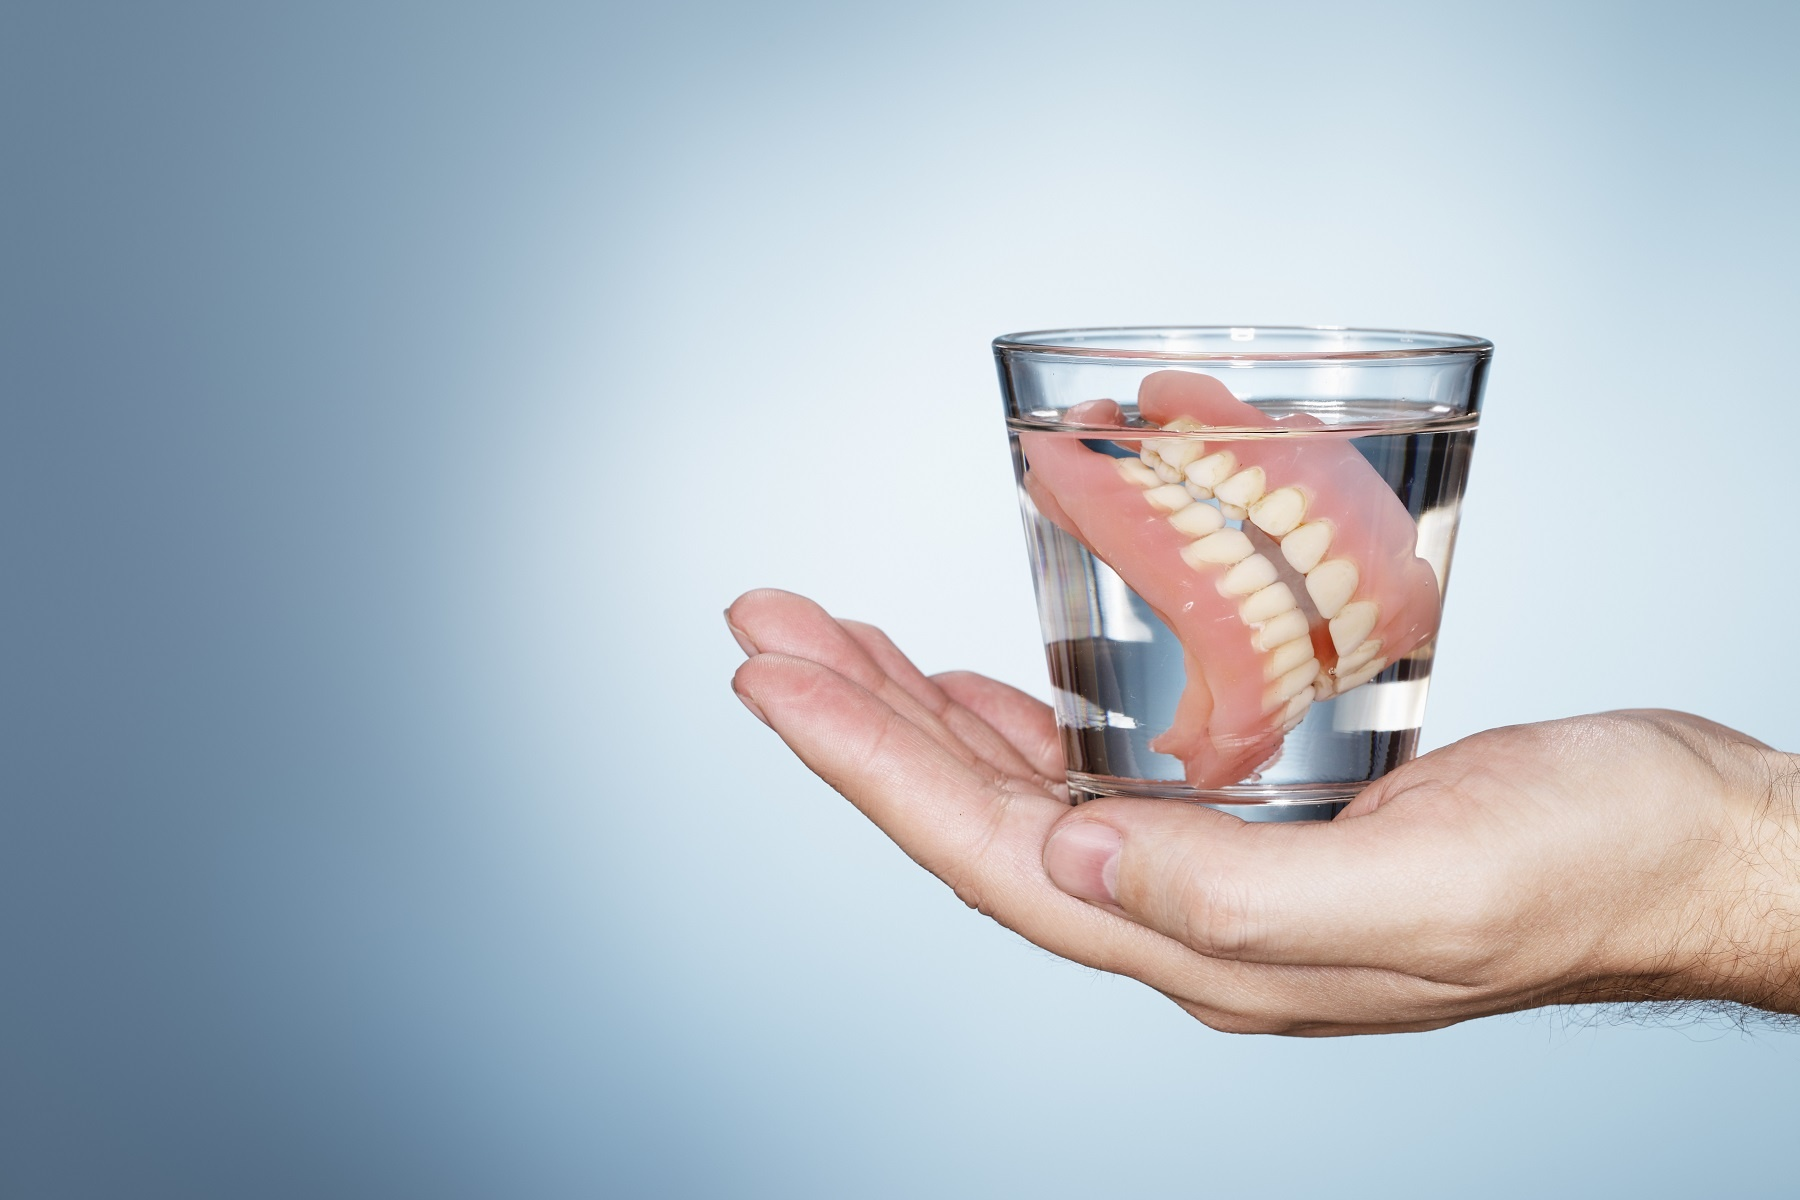 Dentures in a Glass